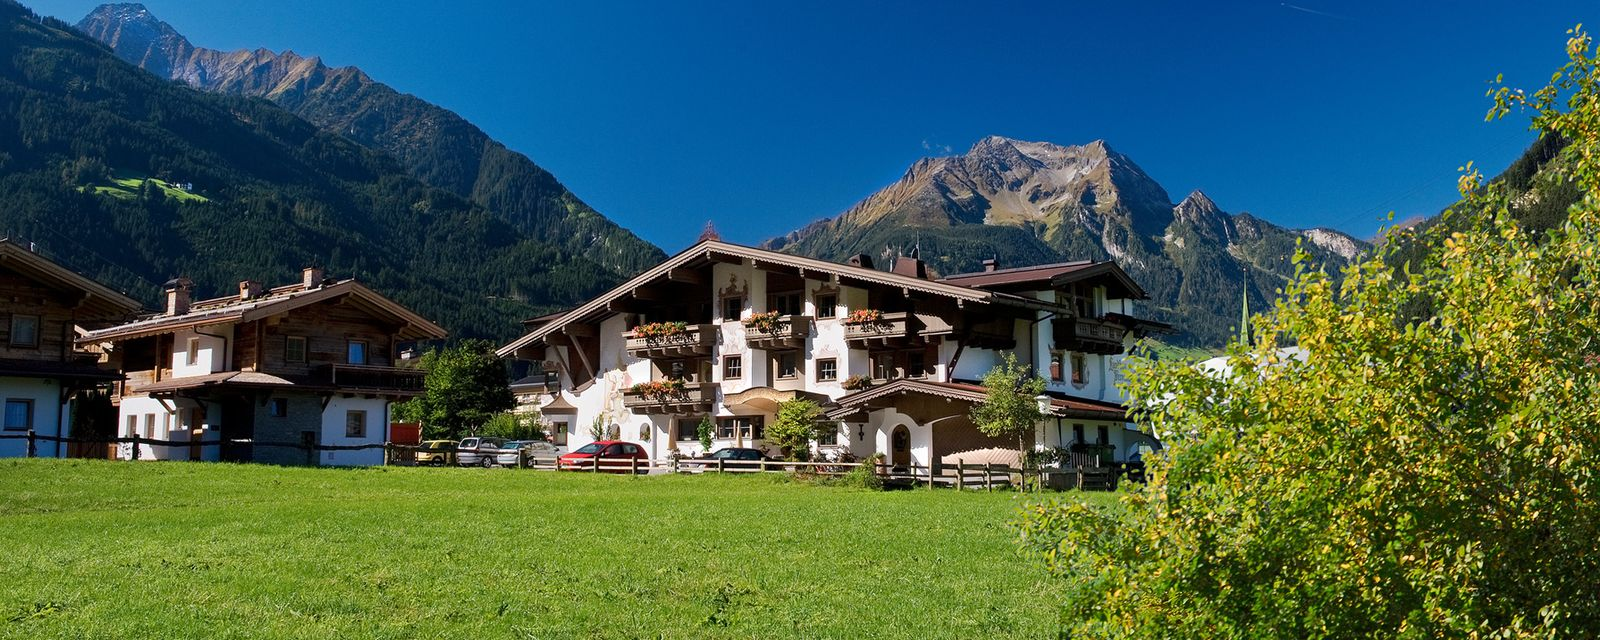 Apparthotel Veronika in Mayrhofen